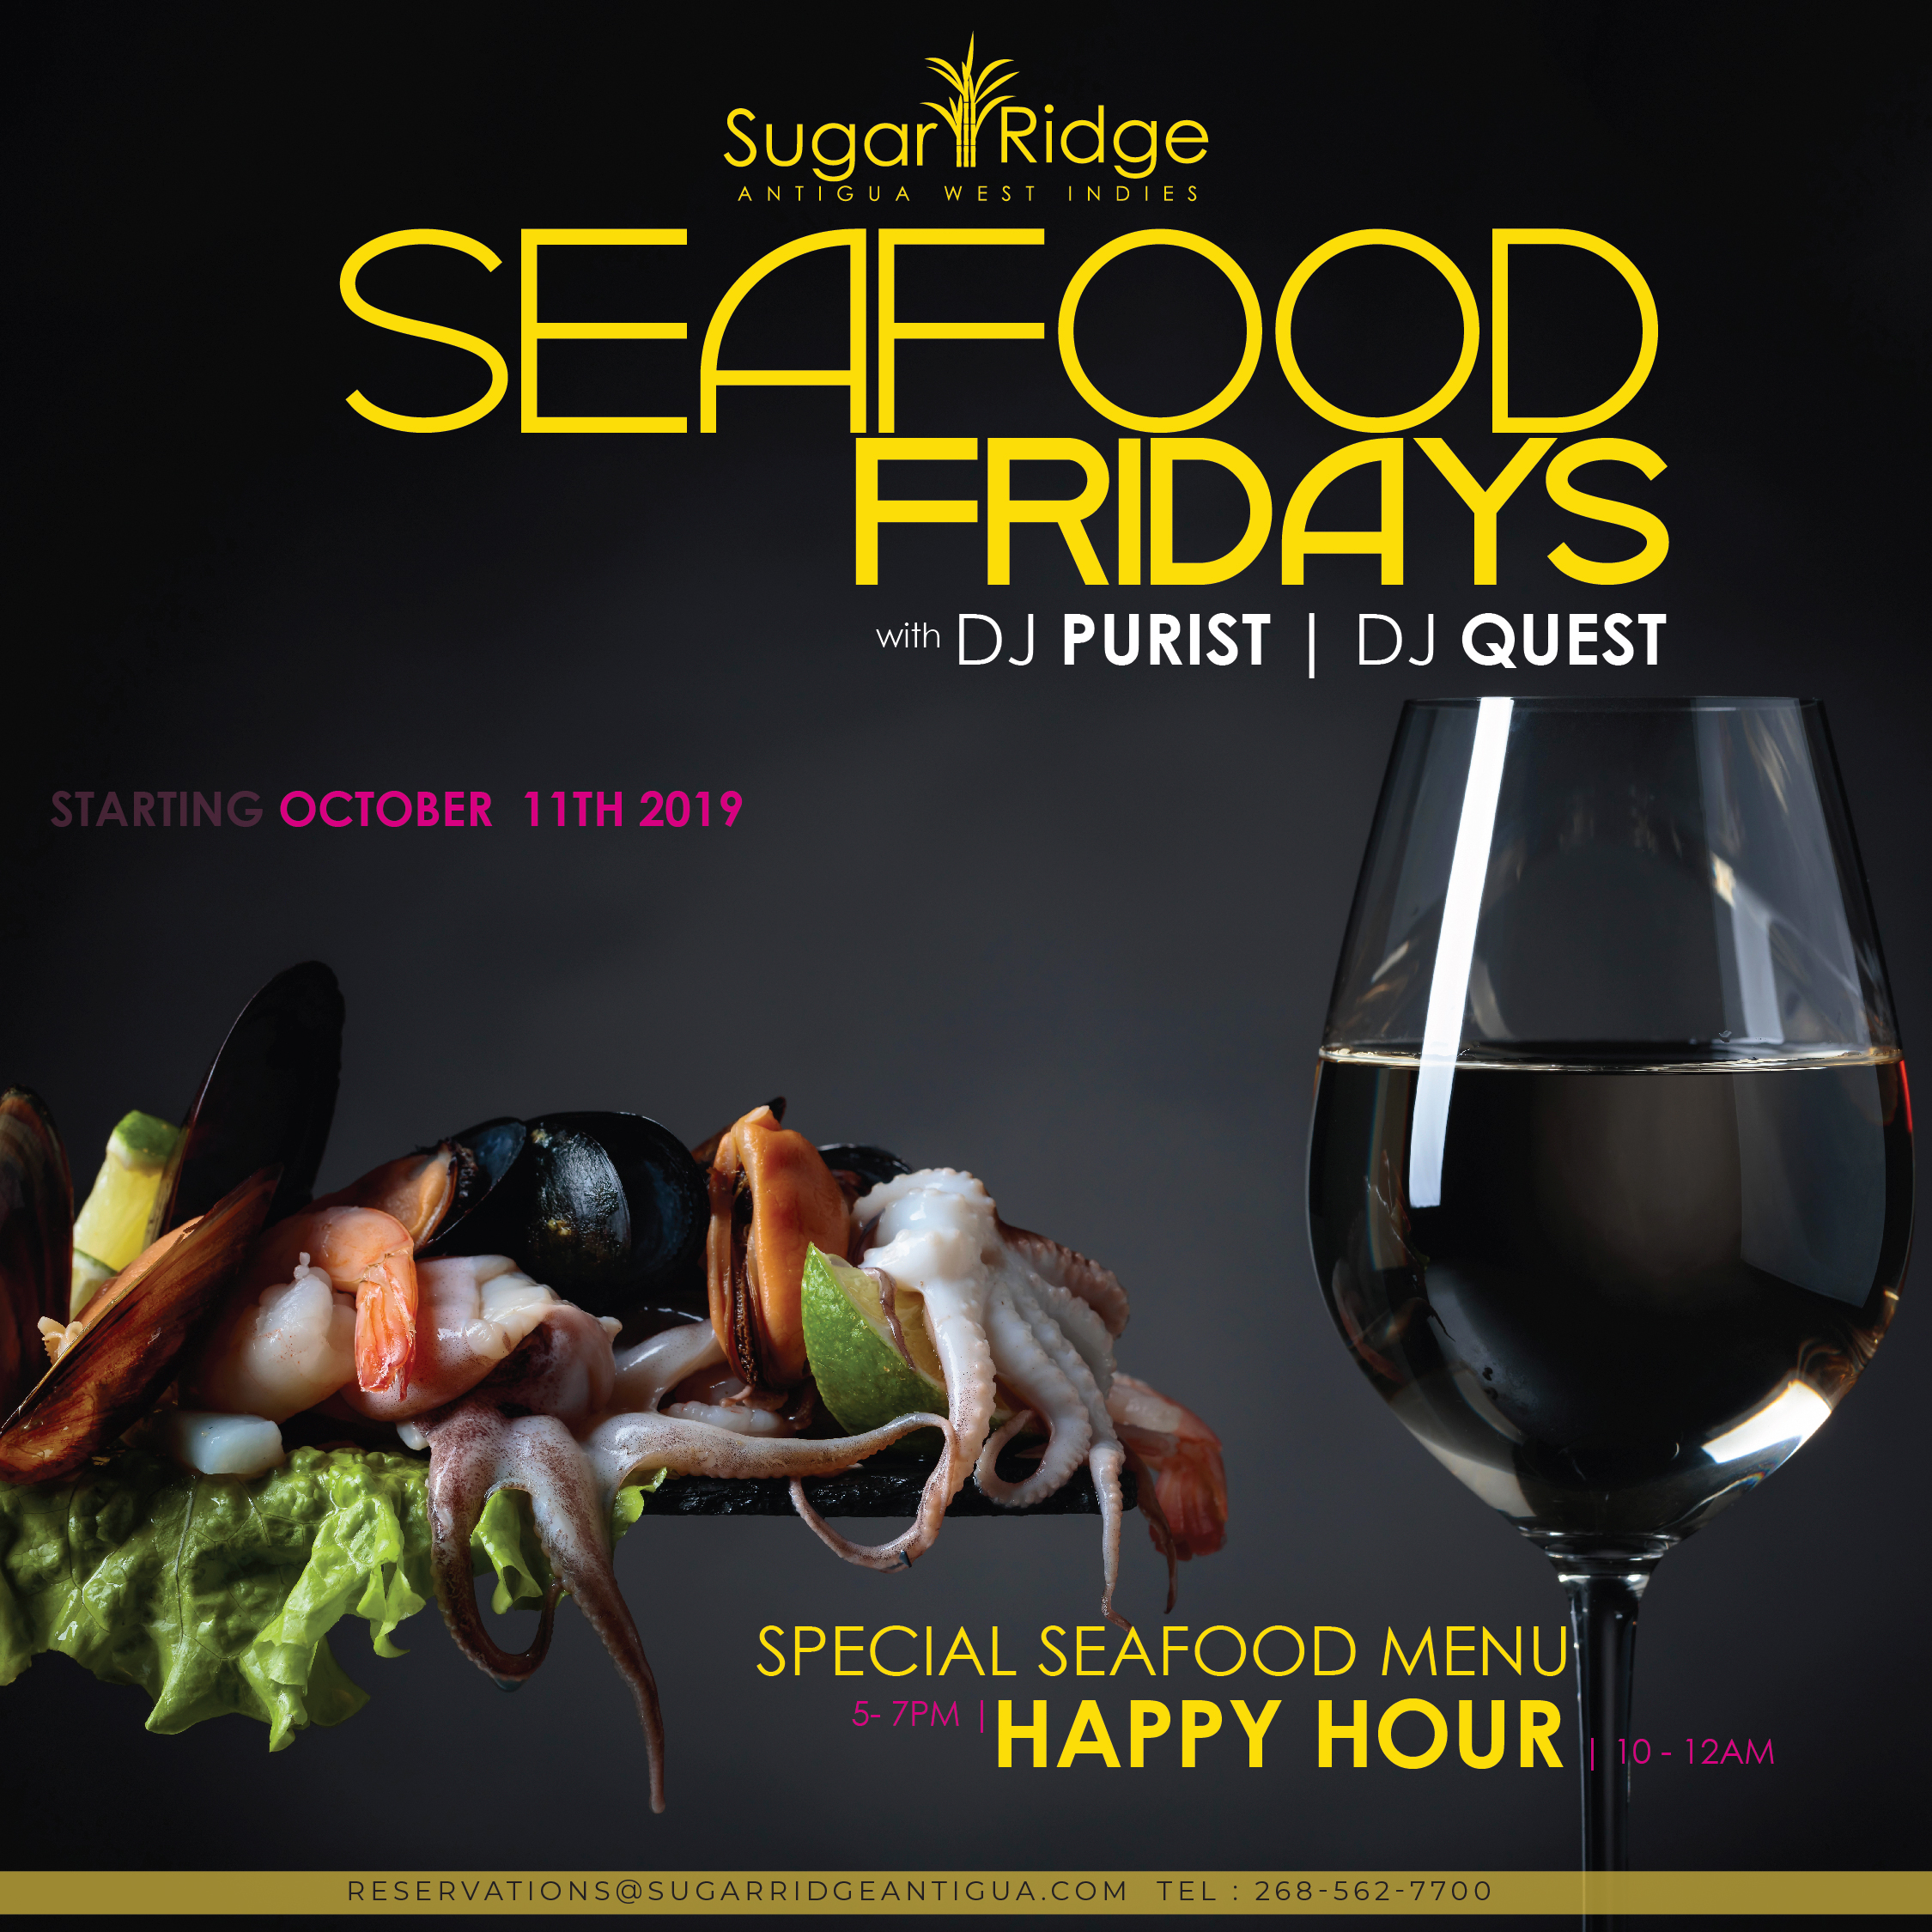 Friday Seafood Night - Sugar Club Restaurant (DJ Purist / DJ Quest) @ Sugar Club Restaurant